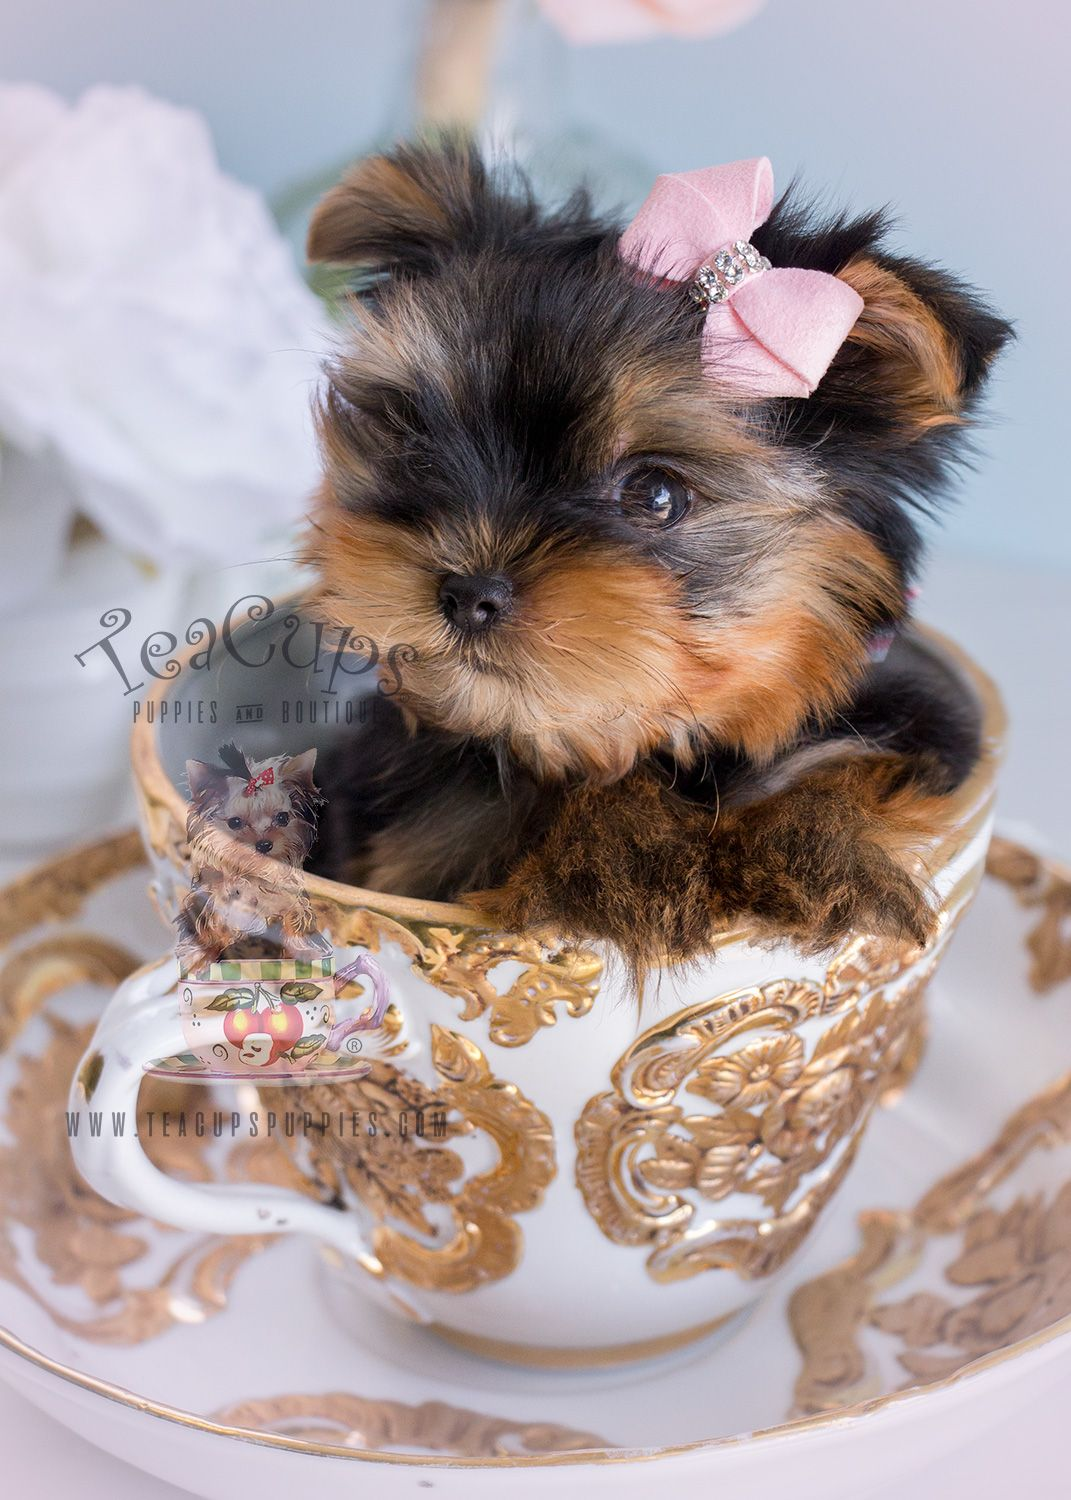 Baby Doll Yorkie Puppy By Teacups Yorkie Puppy For Sale Yorkshire Terrier Puppies Yorkie Puppy